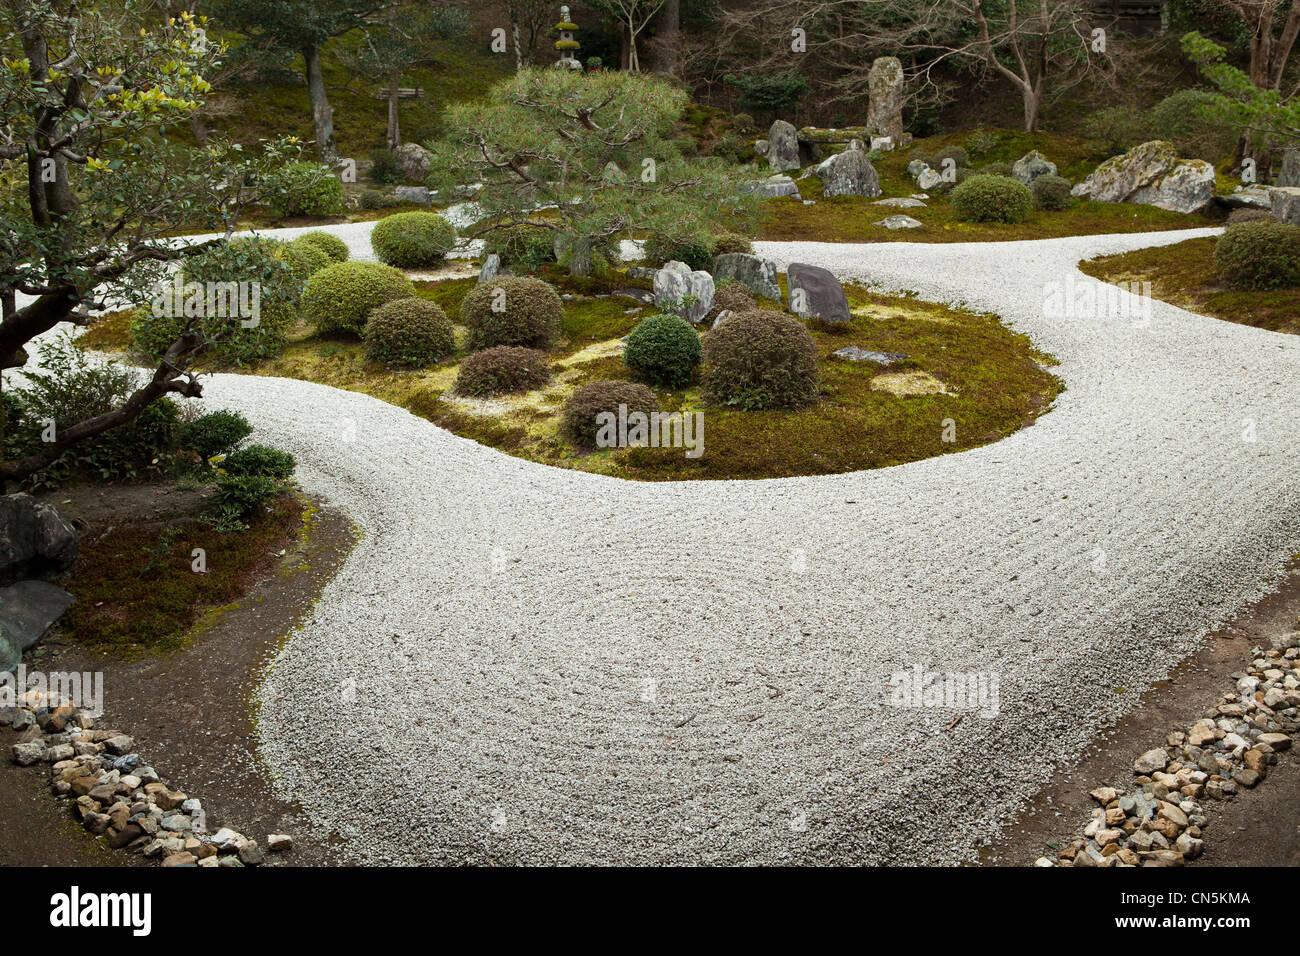 Manshu In Is A Karesansui Zen Garden Containing A Pinus Pentaphylla Tree,  Now About